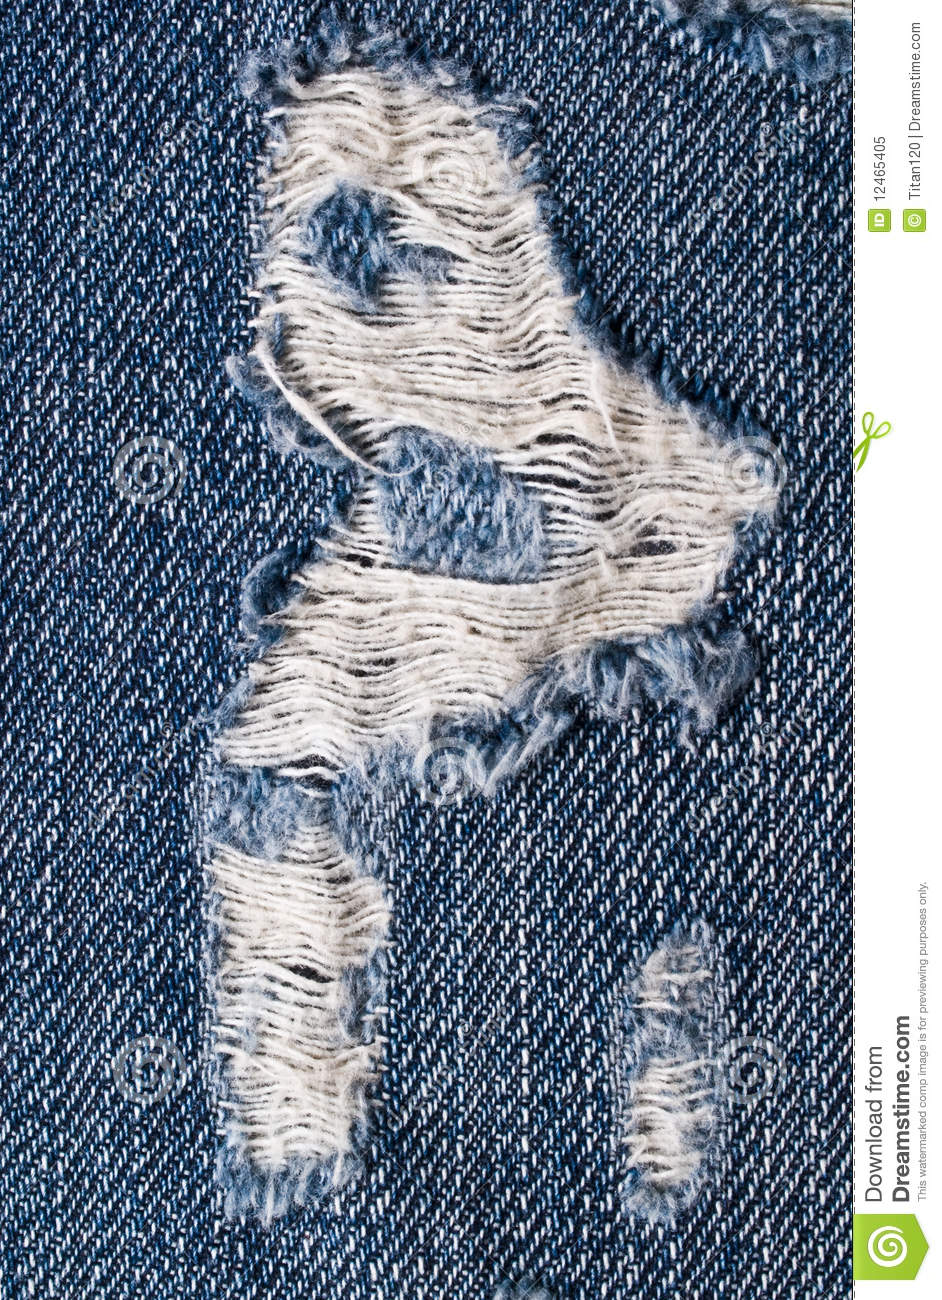 https://thumbs.dreamstime.com/z/background-ripped-jeans-12465405.jpg